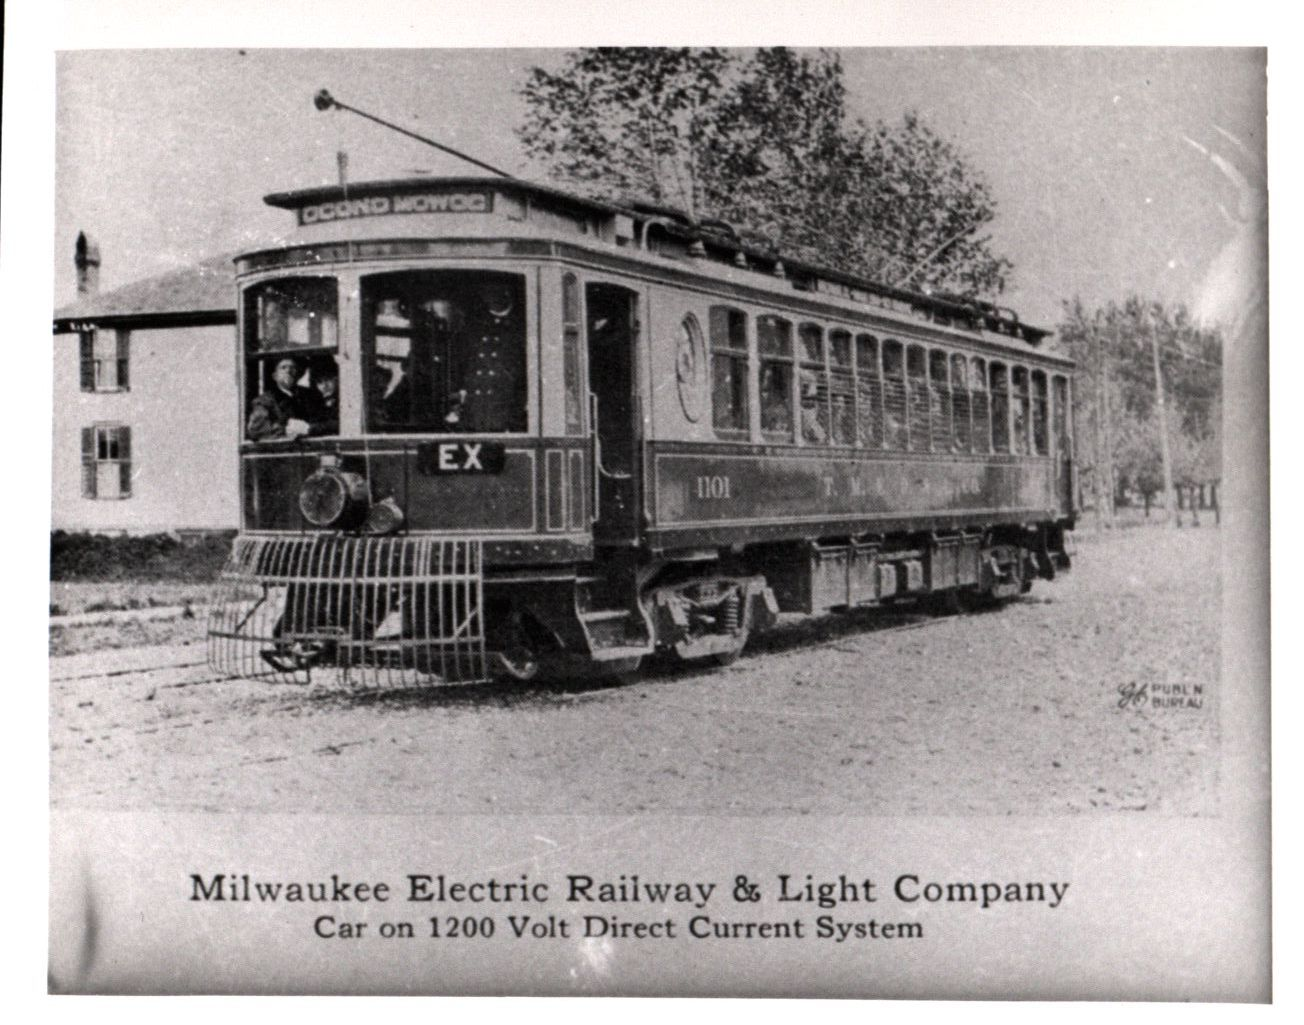 The Milwaukee Electric Railway and Light Company expanded its interurban transit lines west toward Oconomowoc in 1907.